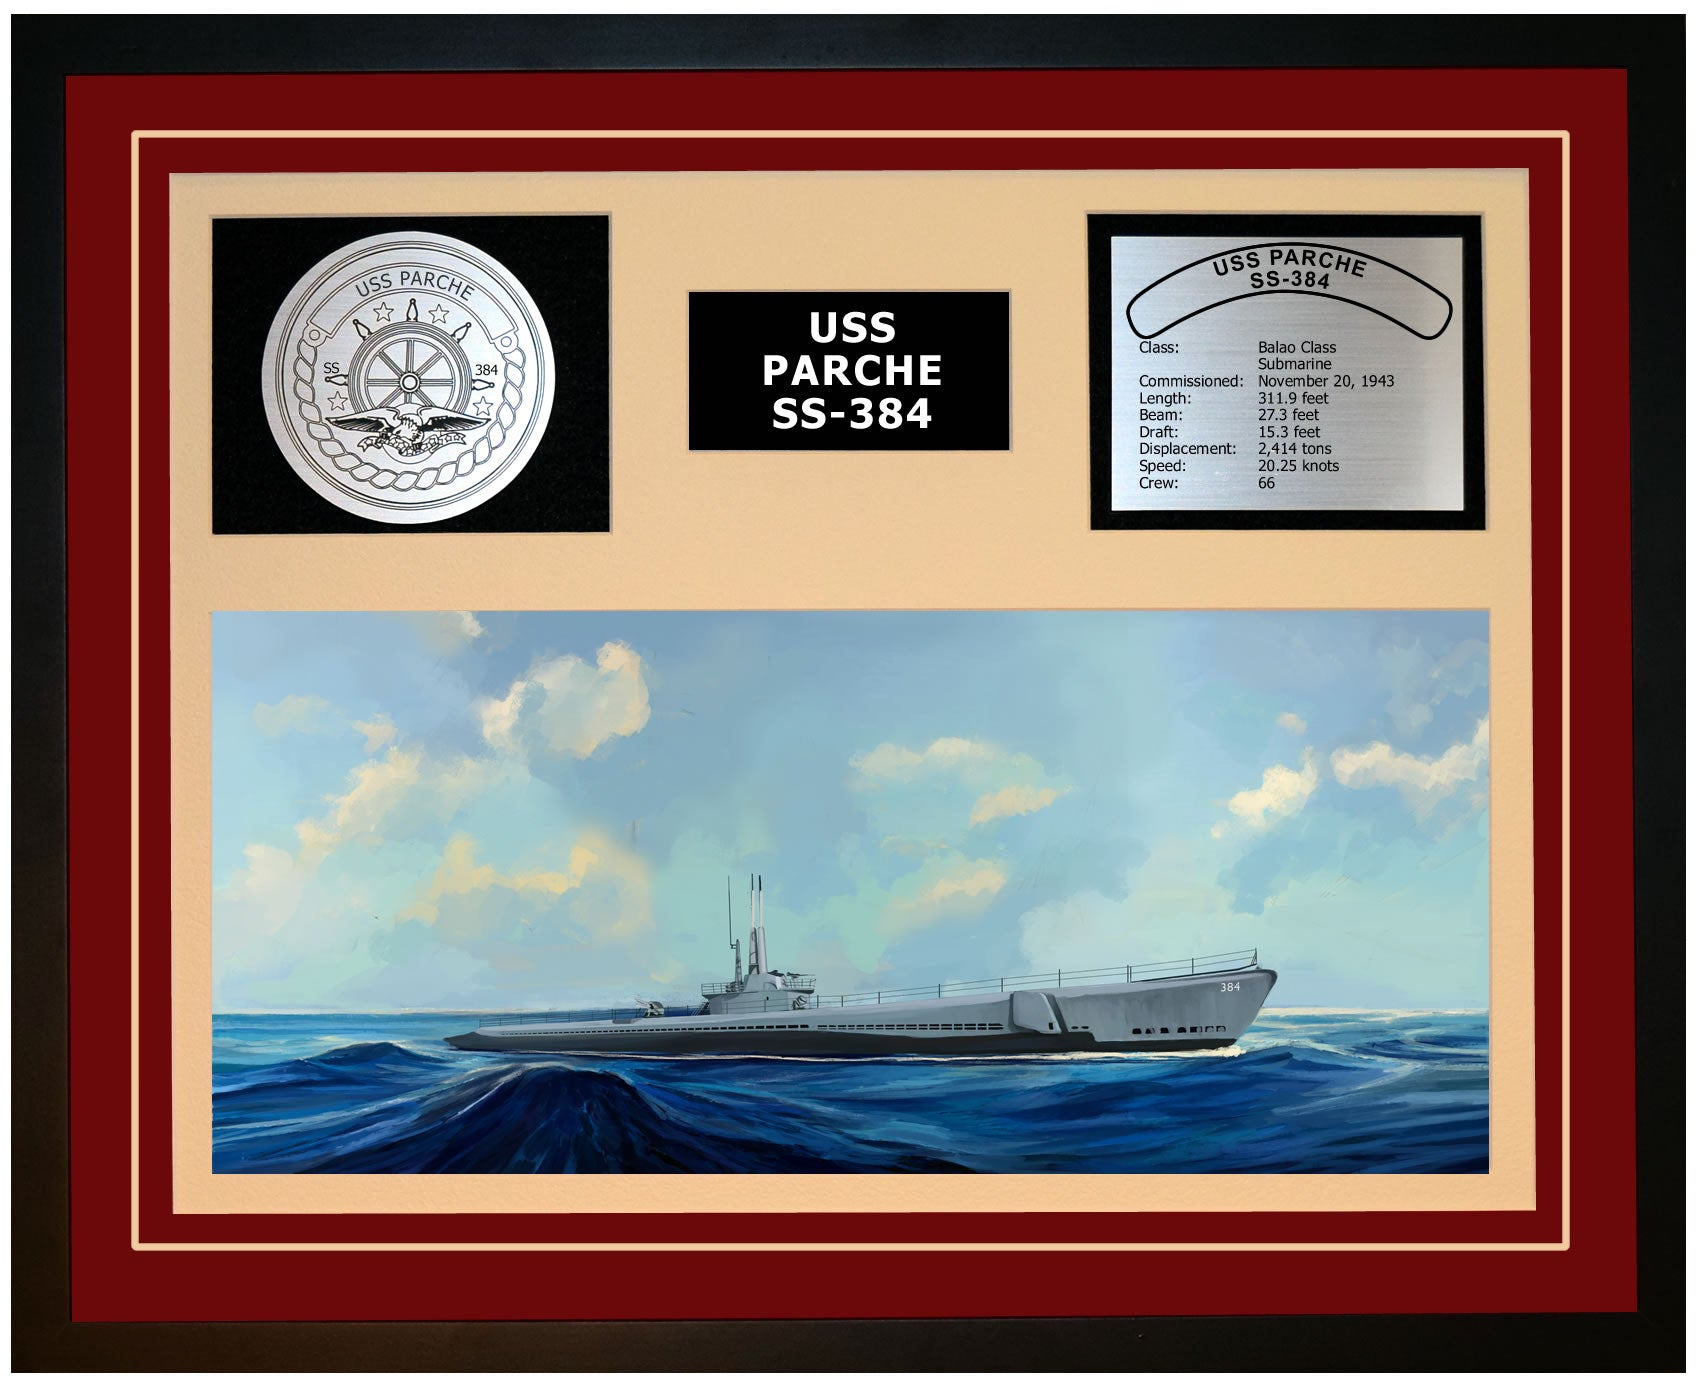 USS PARCHE SS-384 Framed Navy Ship Display Burgundy